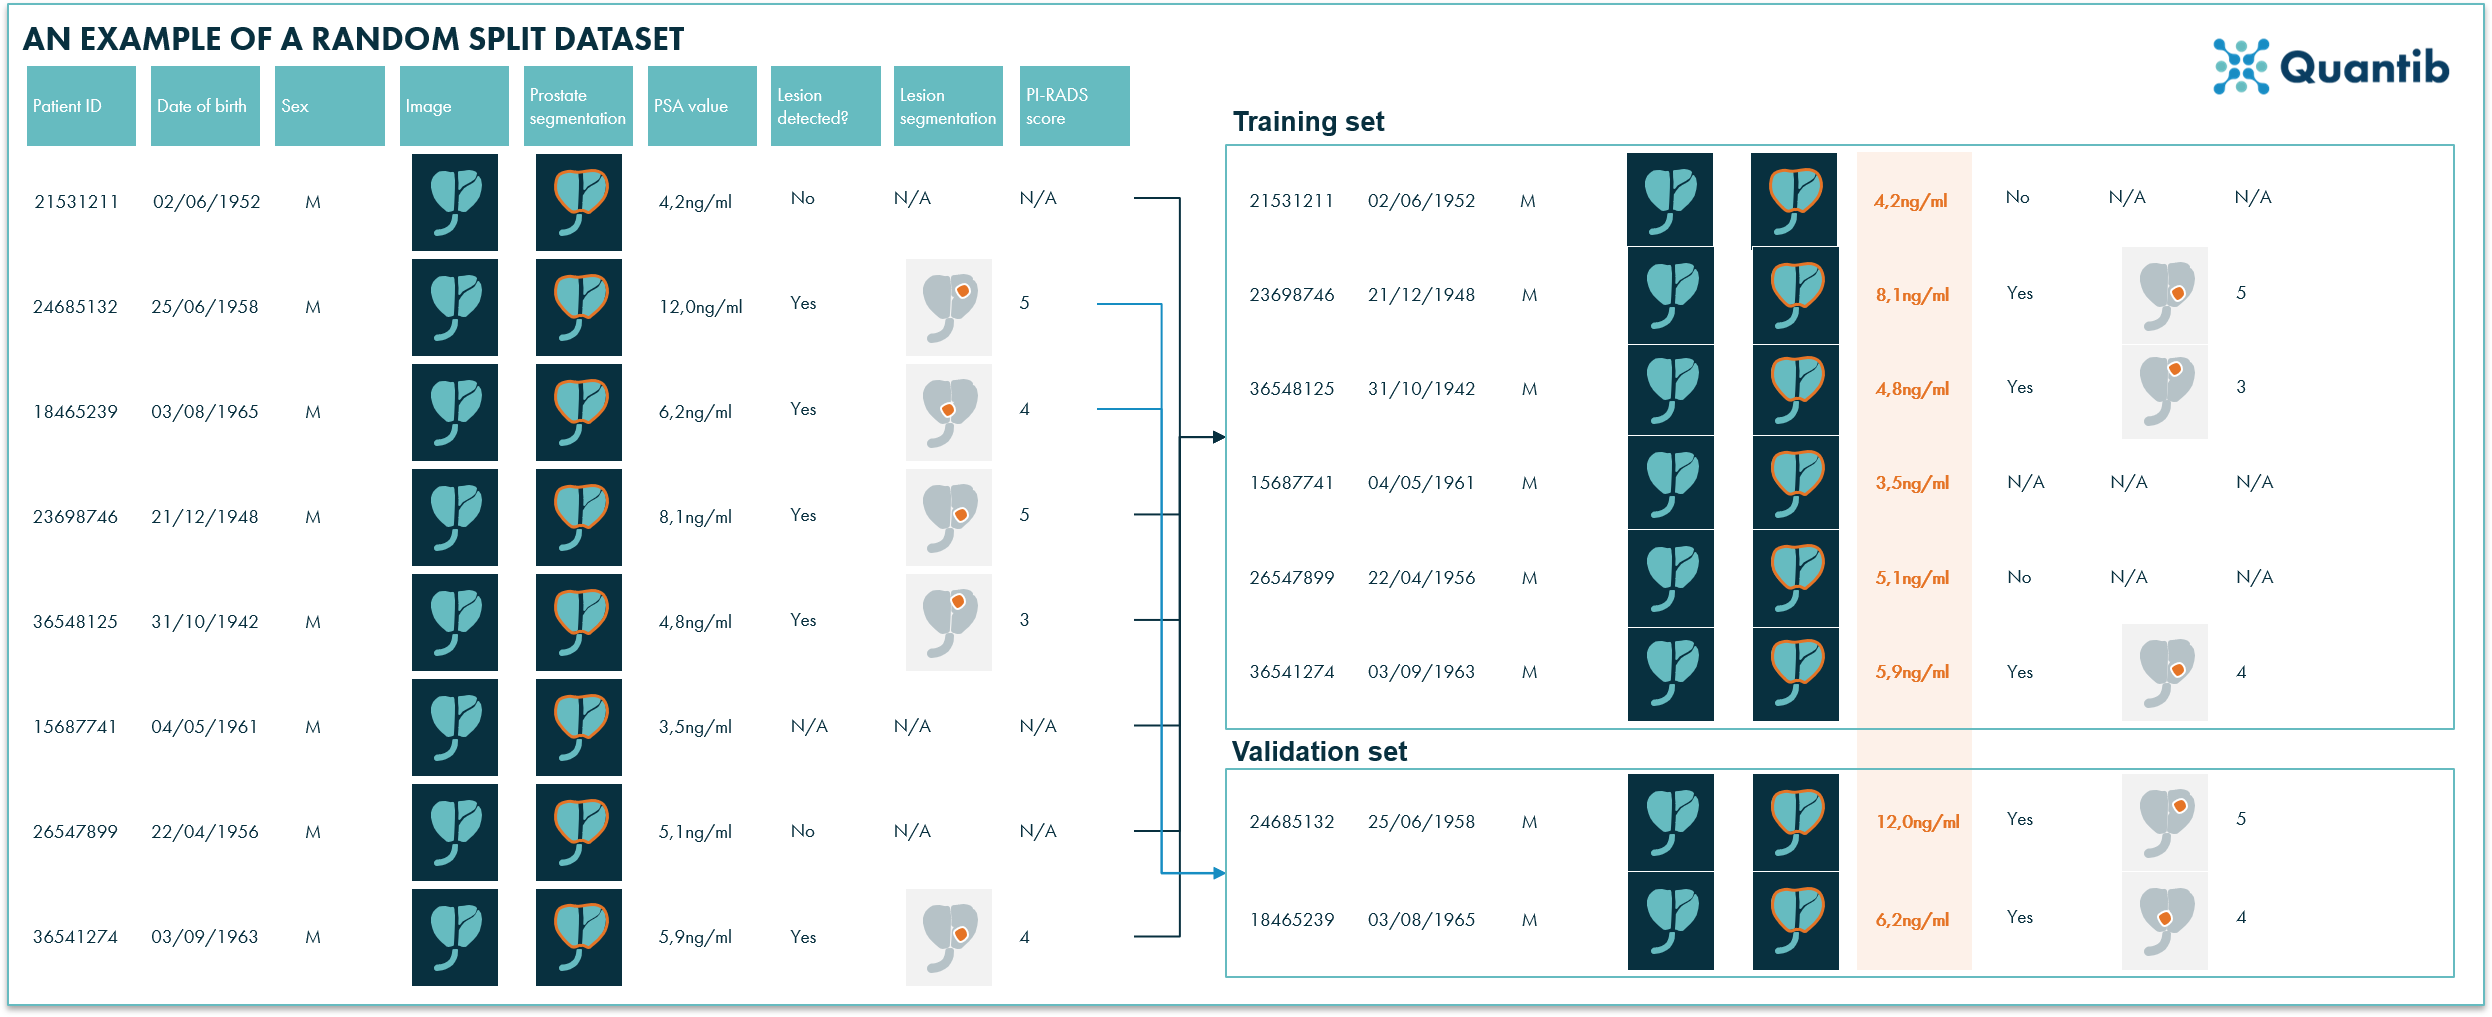 Schematic overview of how a medical imaging dataset is randomly split into a training and a validation set